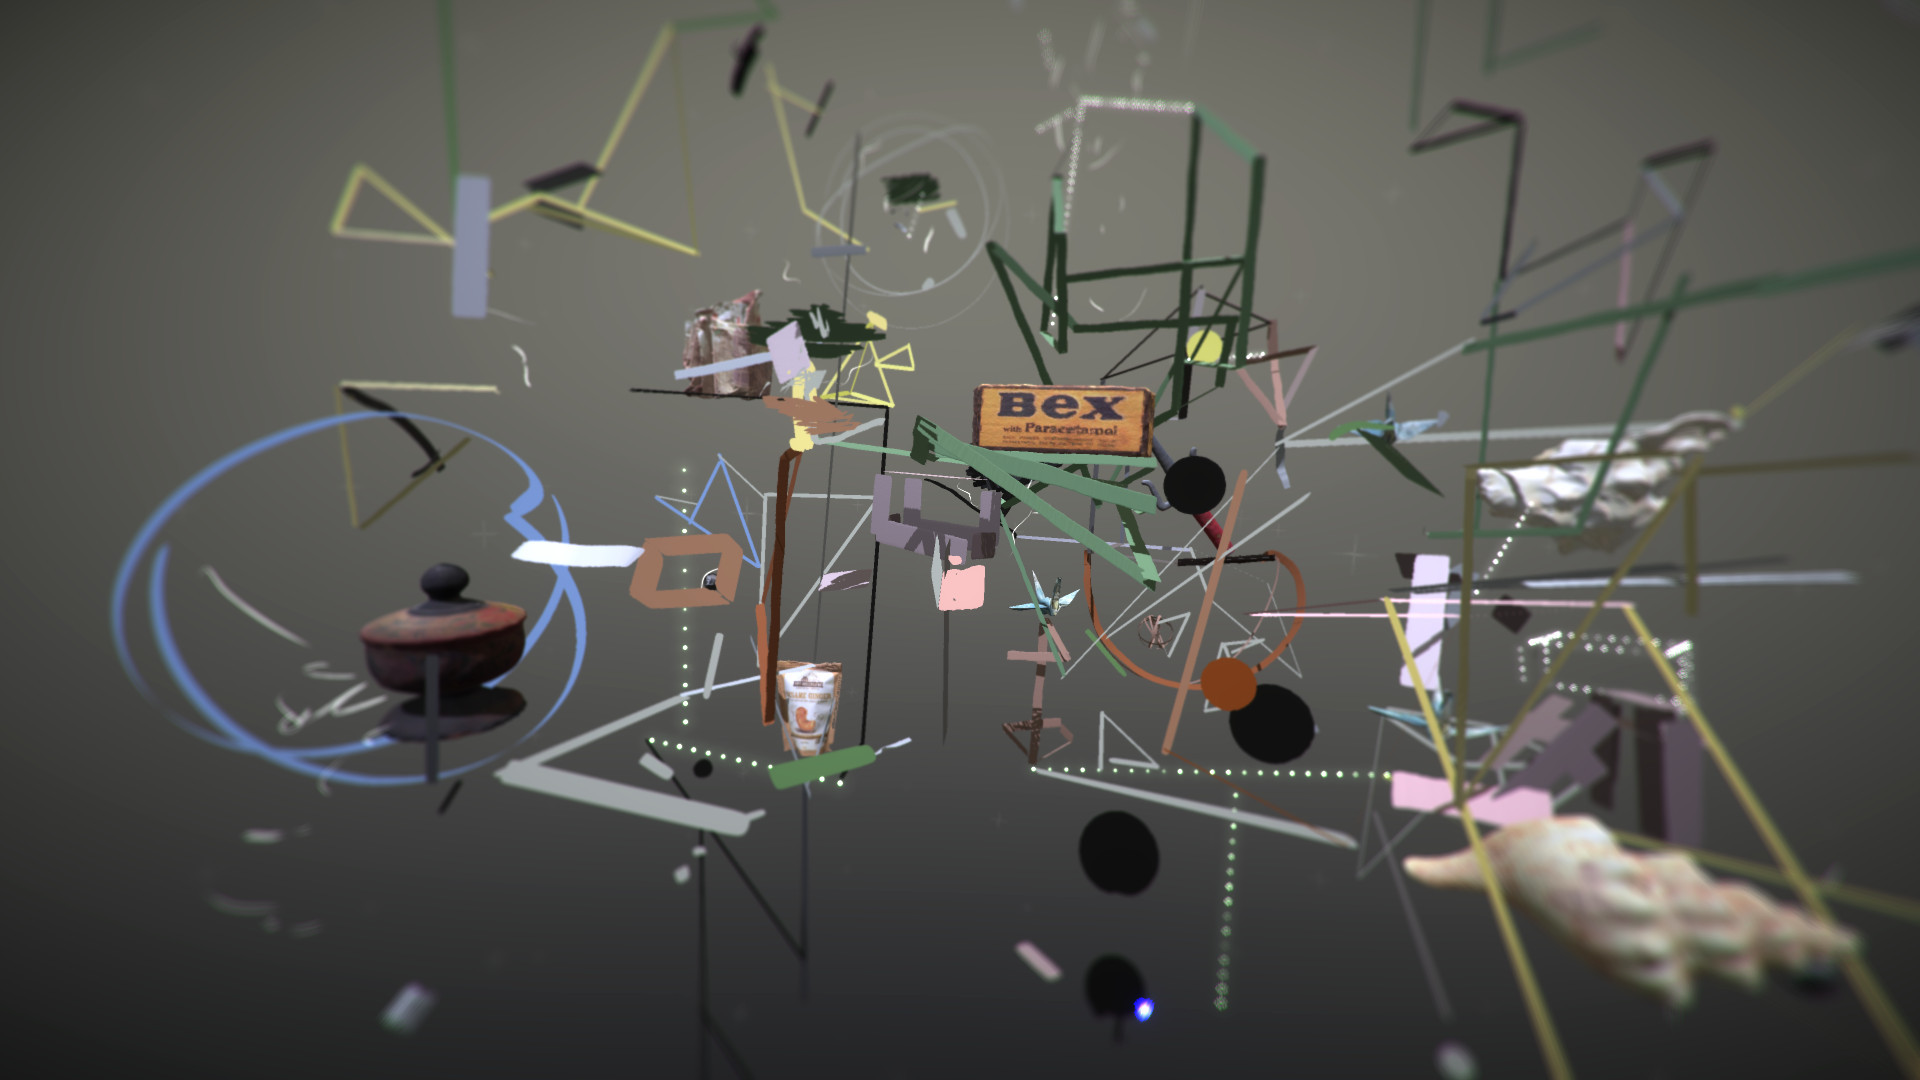 VR design by Warren Armstromg and Susannah Langley